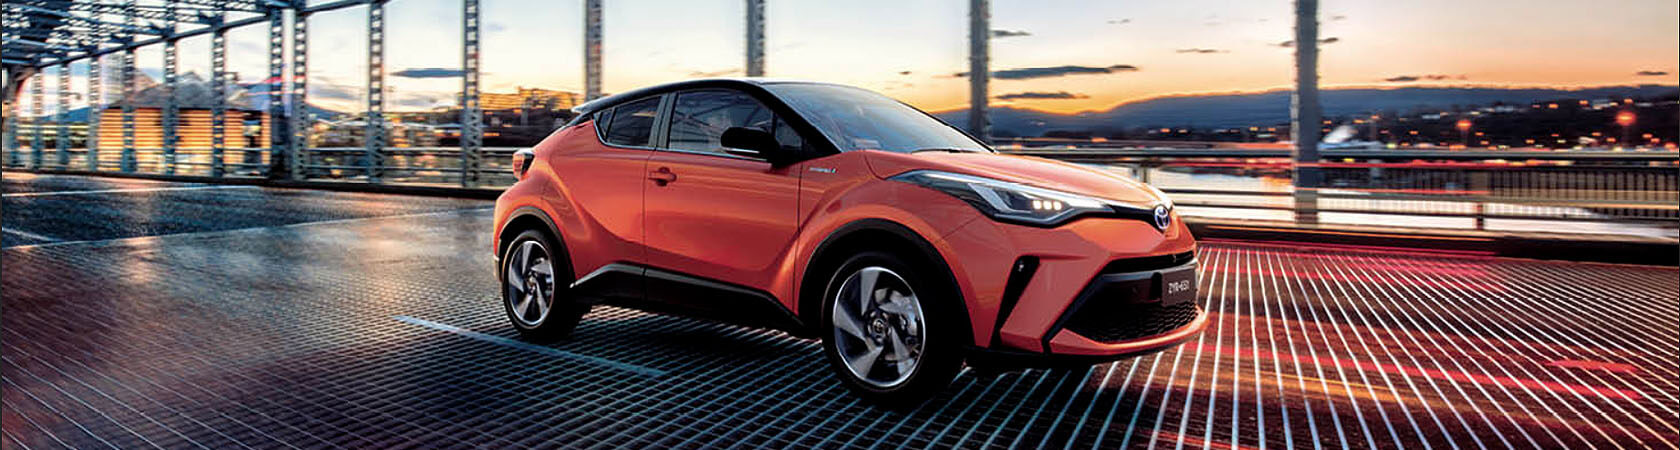 Maryborough Toyota C-HR